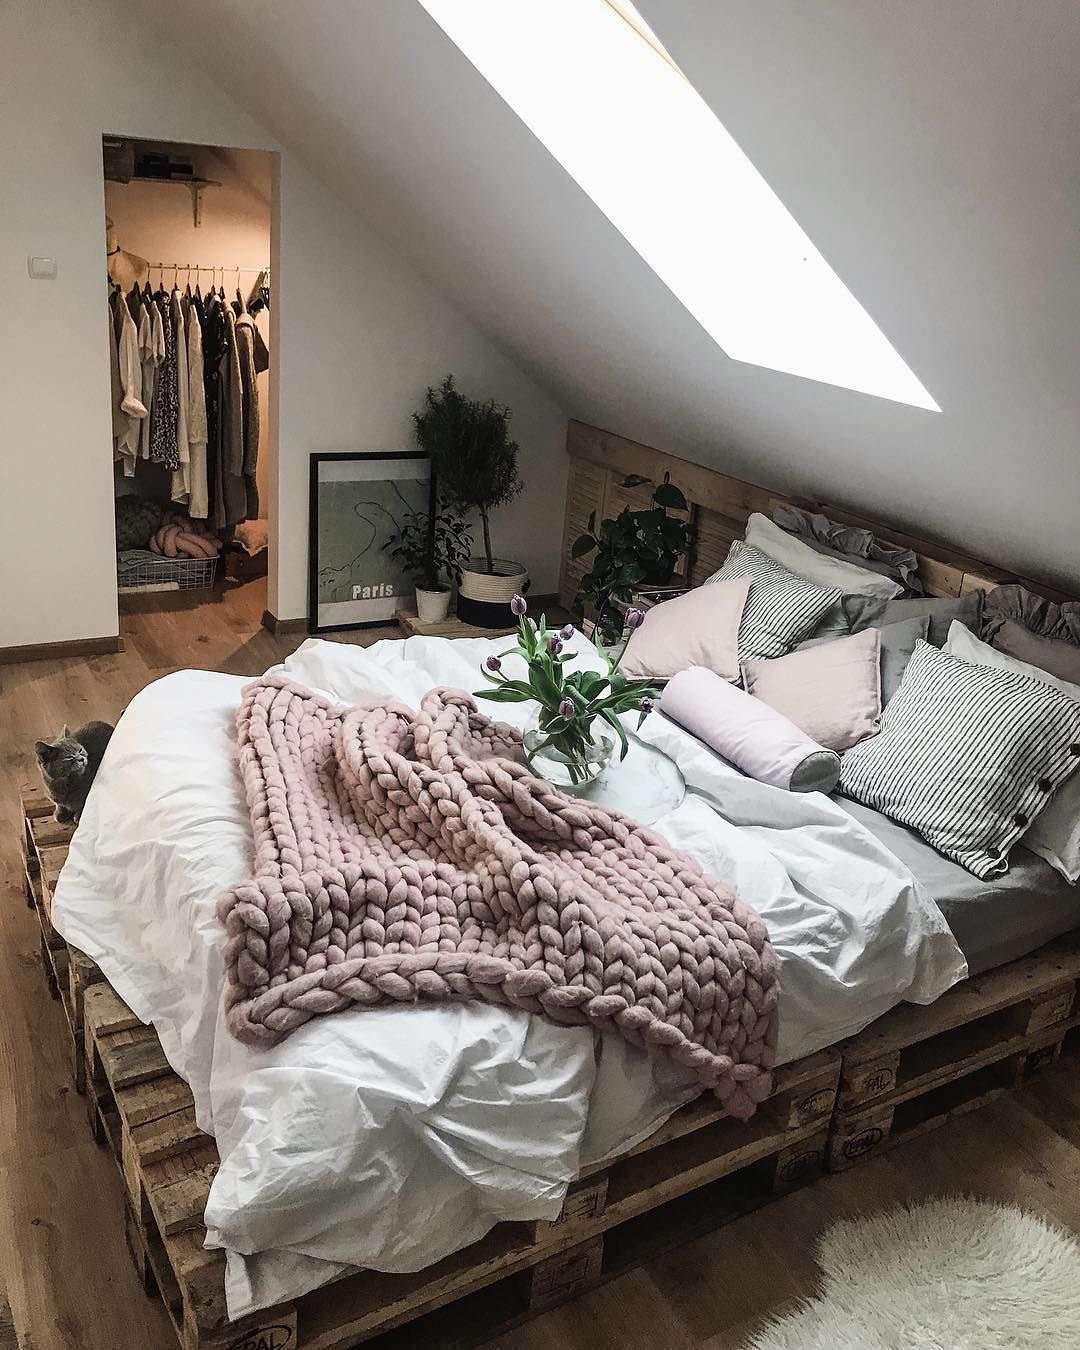 20 cozy bedrooms right in time for winter @nowletsgetgoing